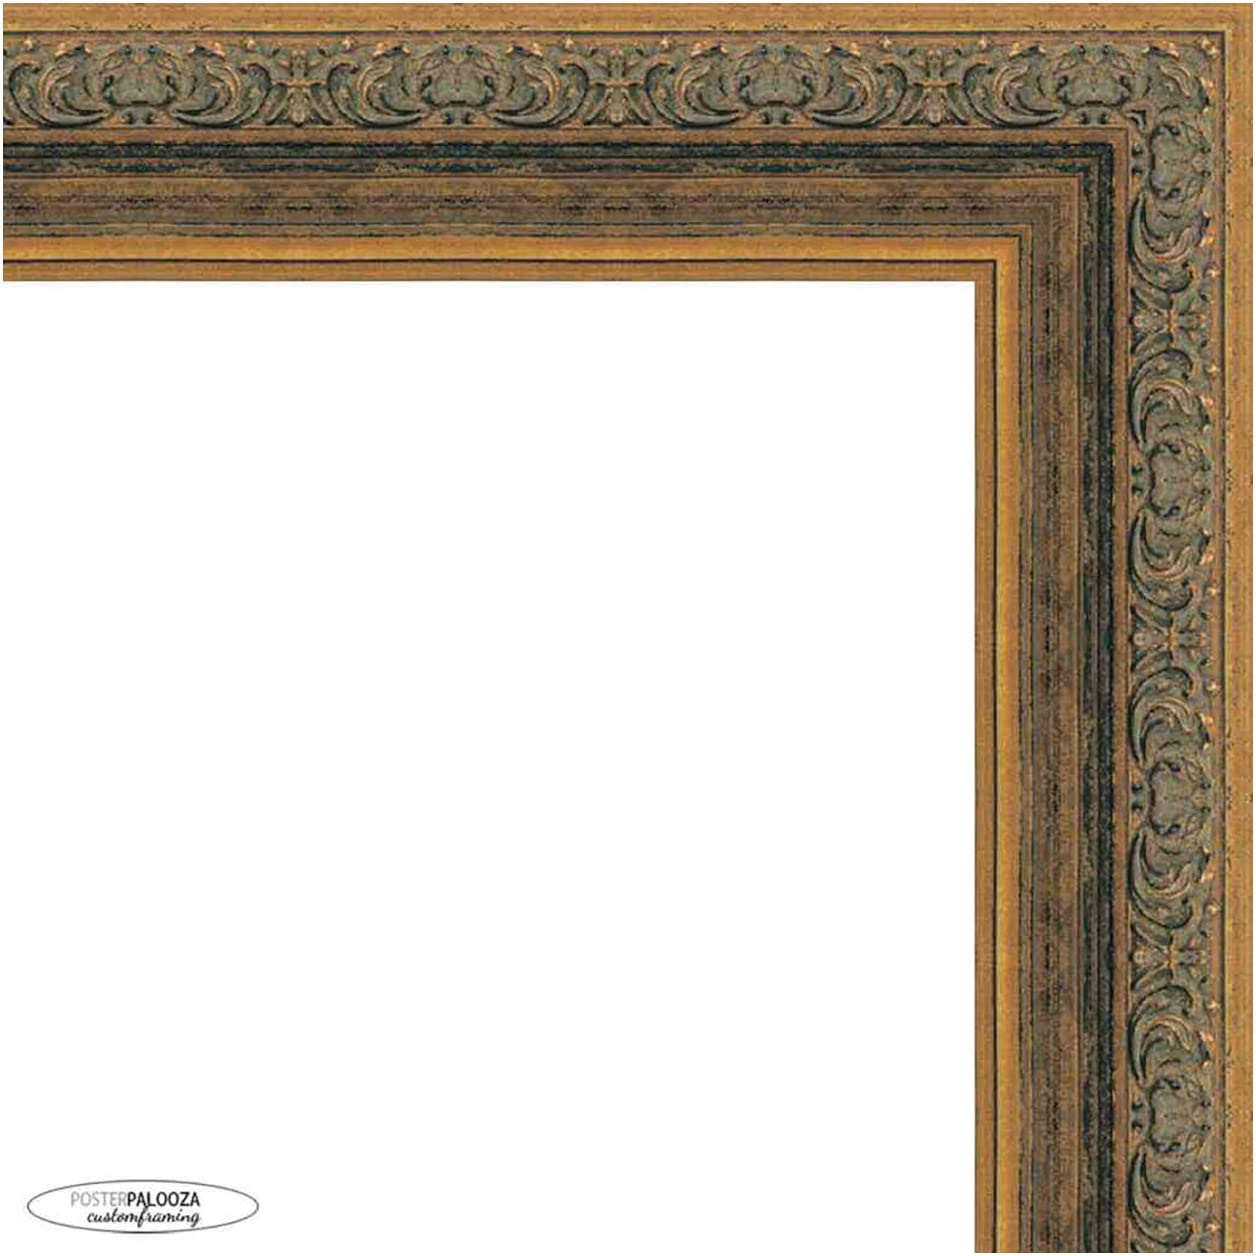 Poster Palooza 39x27 Ornate Gold Frame Wood Picture Complete New color Indefinitely wit